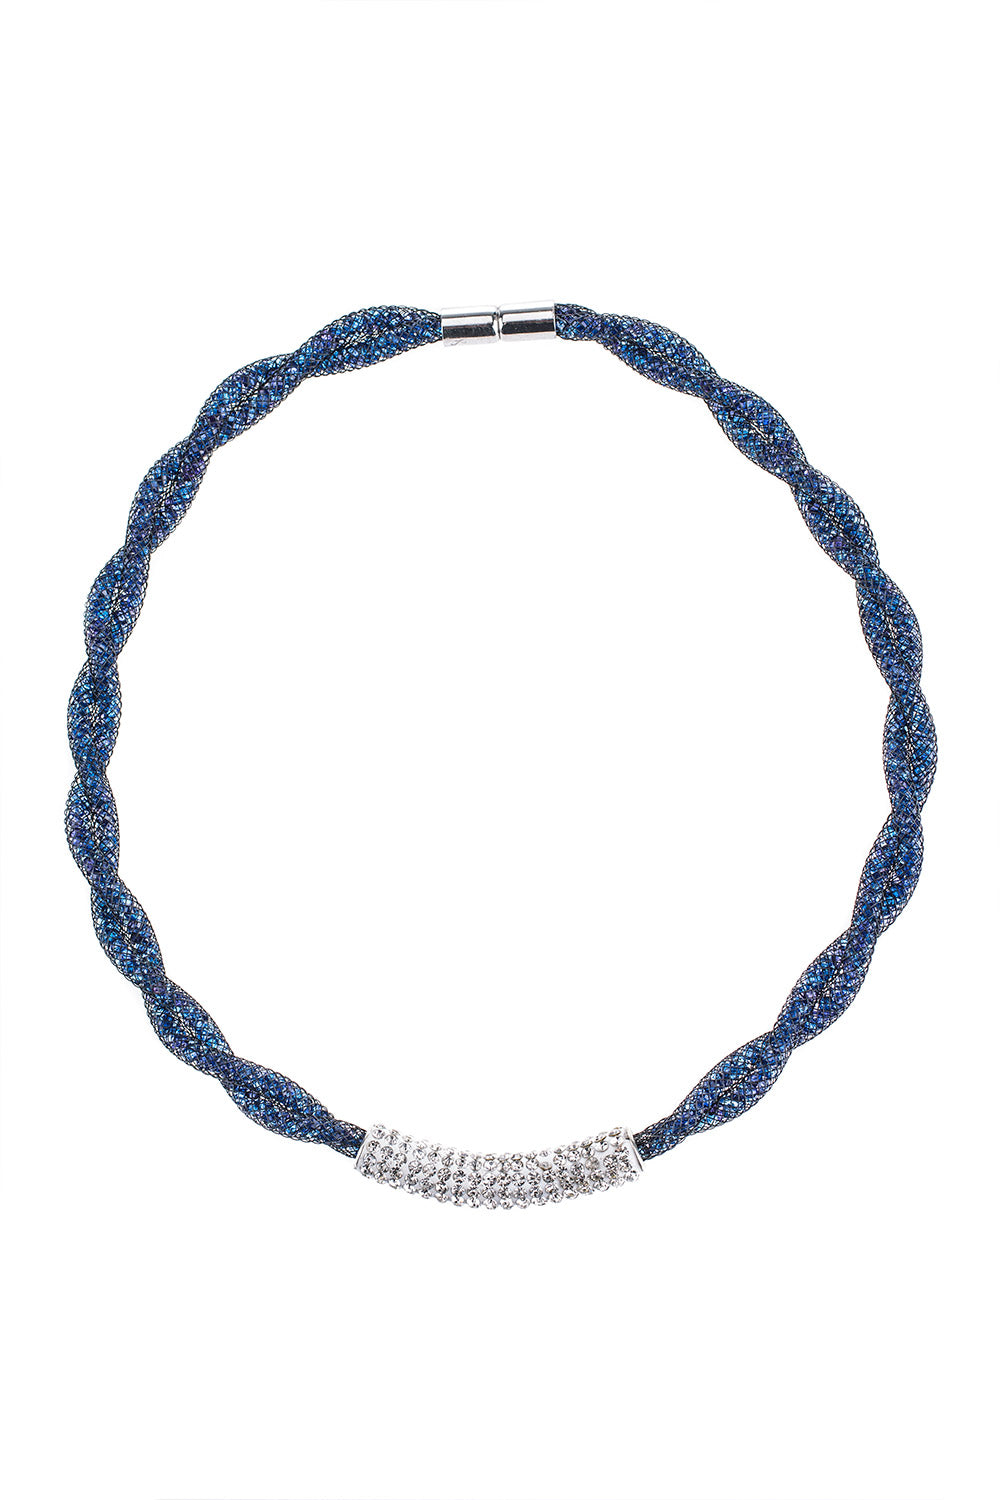 Type 4 Encased Sapphires Necklace